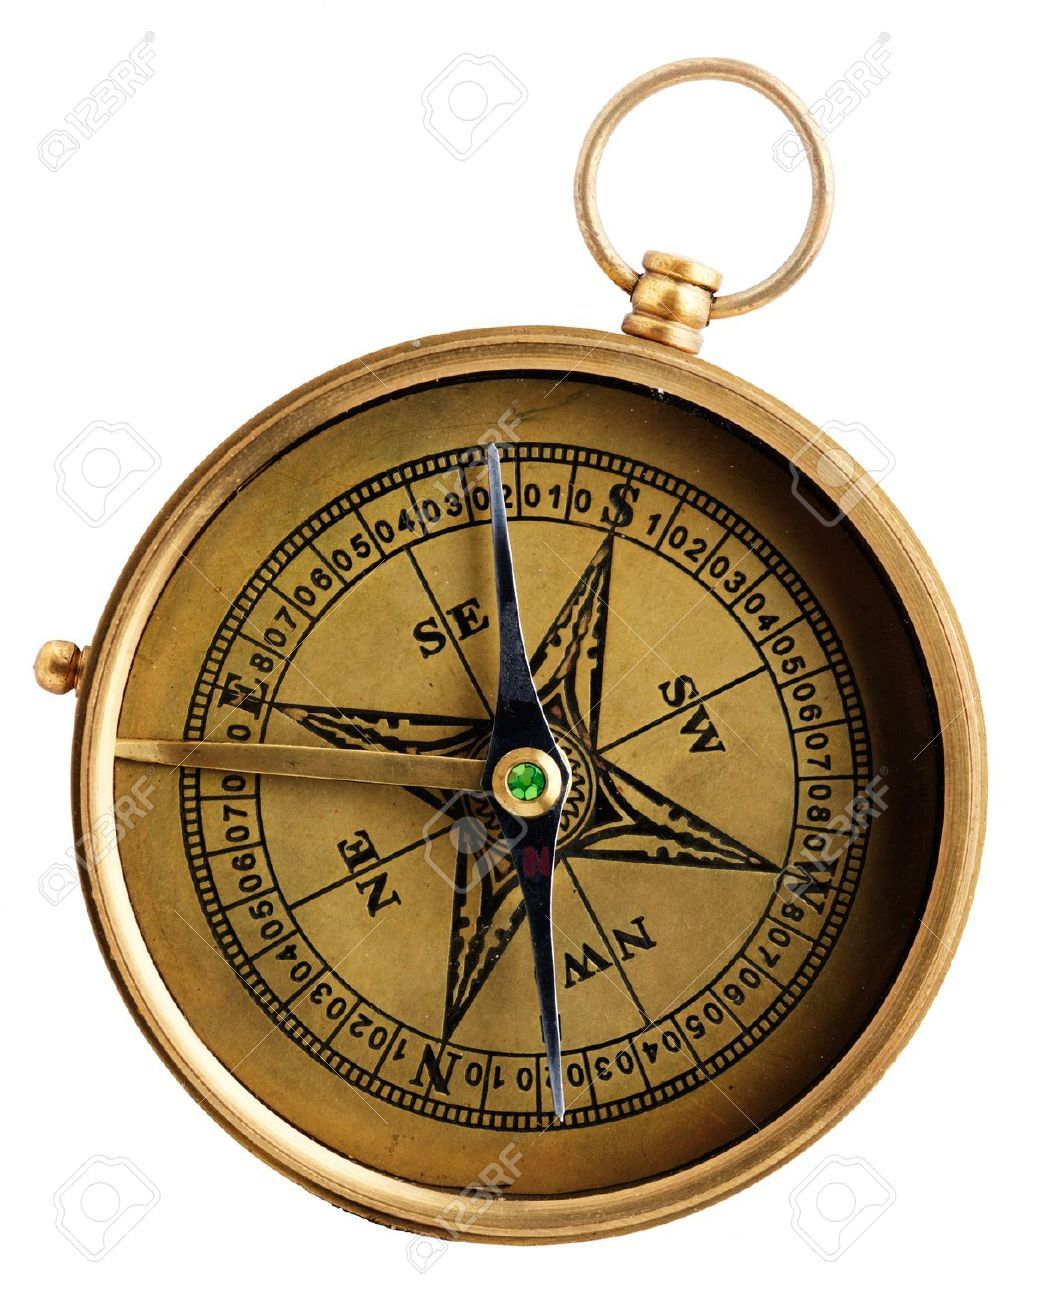 9277890 Vintage Compass Isolated On White Background Stock Photo Old Antique 1061x1300